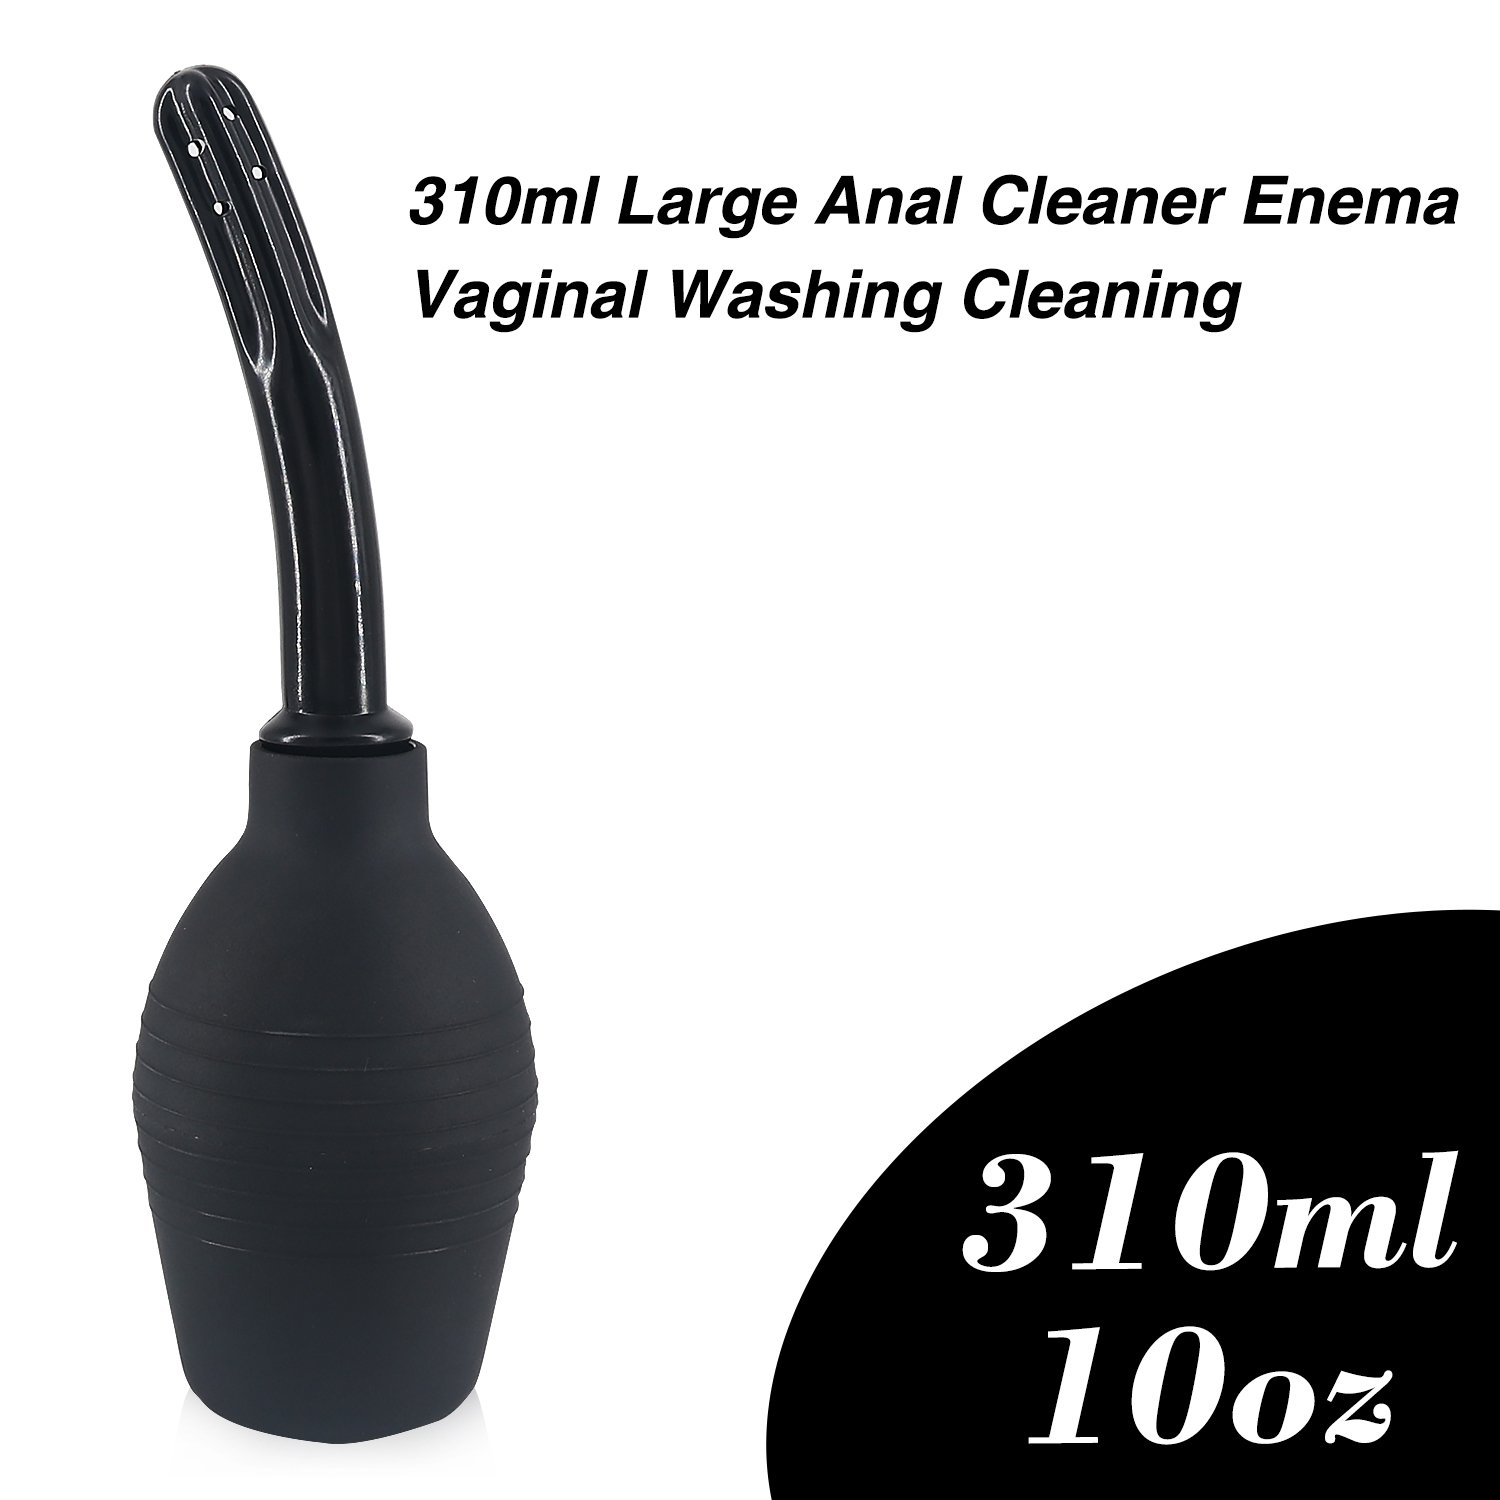 Enemas Anal Douche Bag Douches - Enema Bulb 310ml Large Anal Cleaner Douche Bottle Kit Medical Douche Bottle Vaginal Colon Douche for Men and Woman Vaginal Washing Cleaning Kit